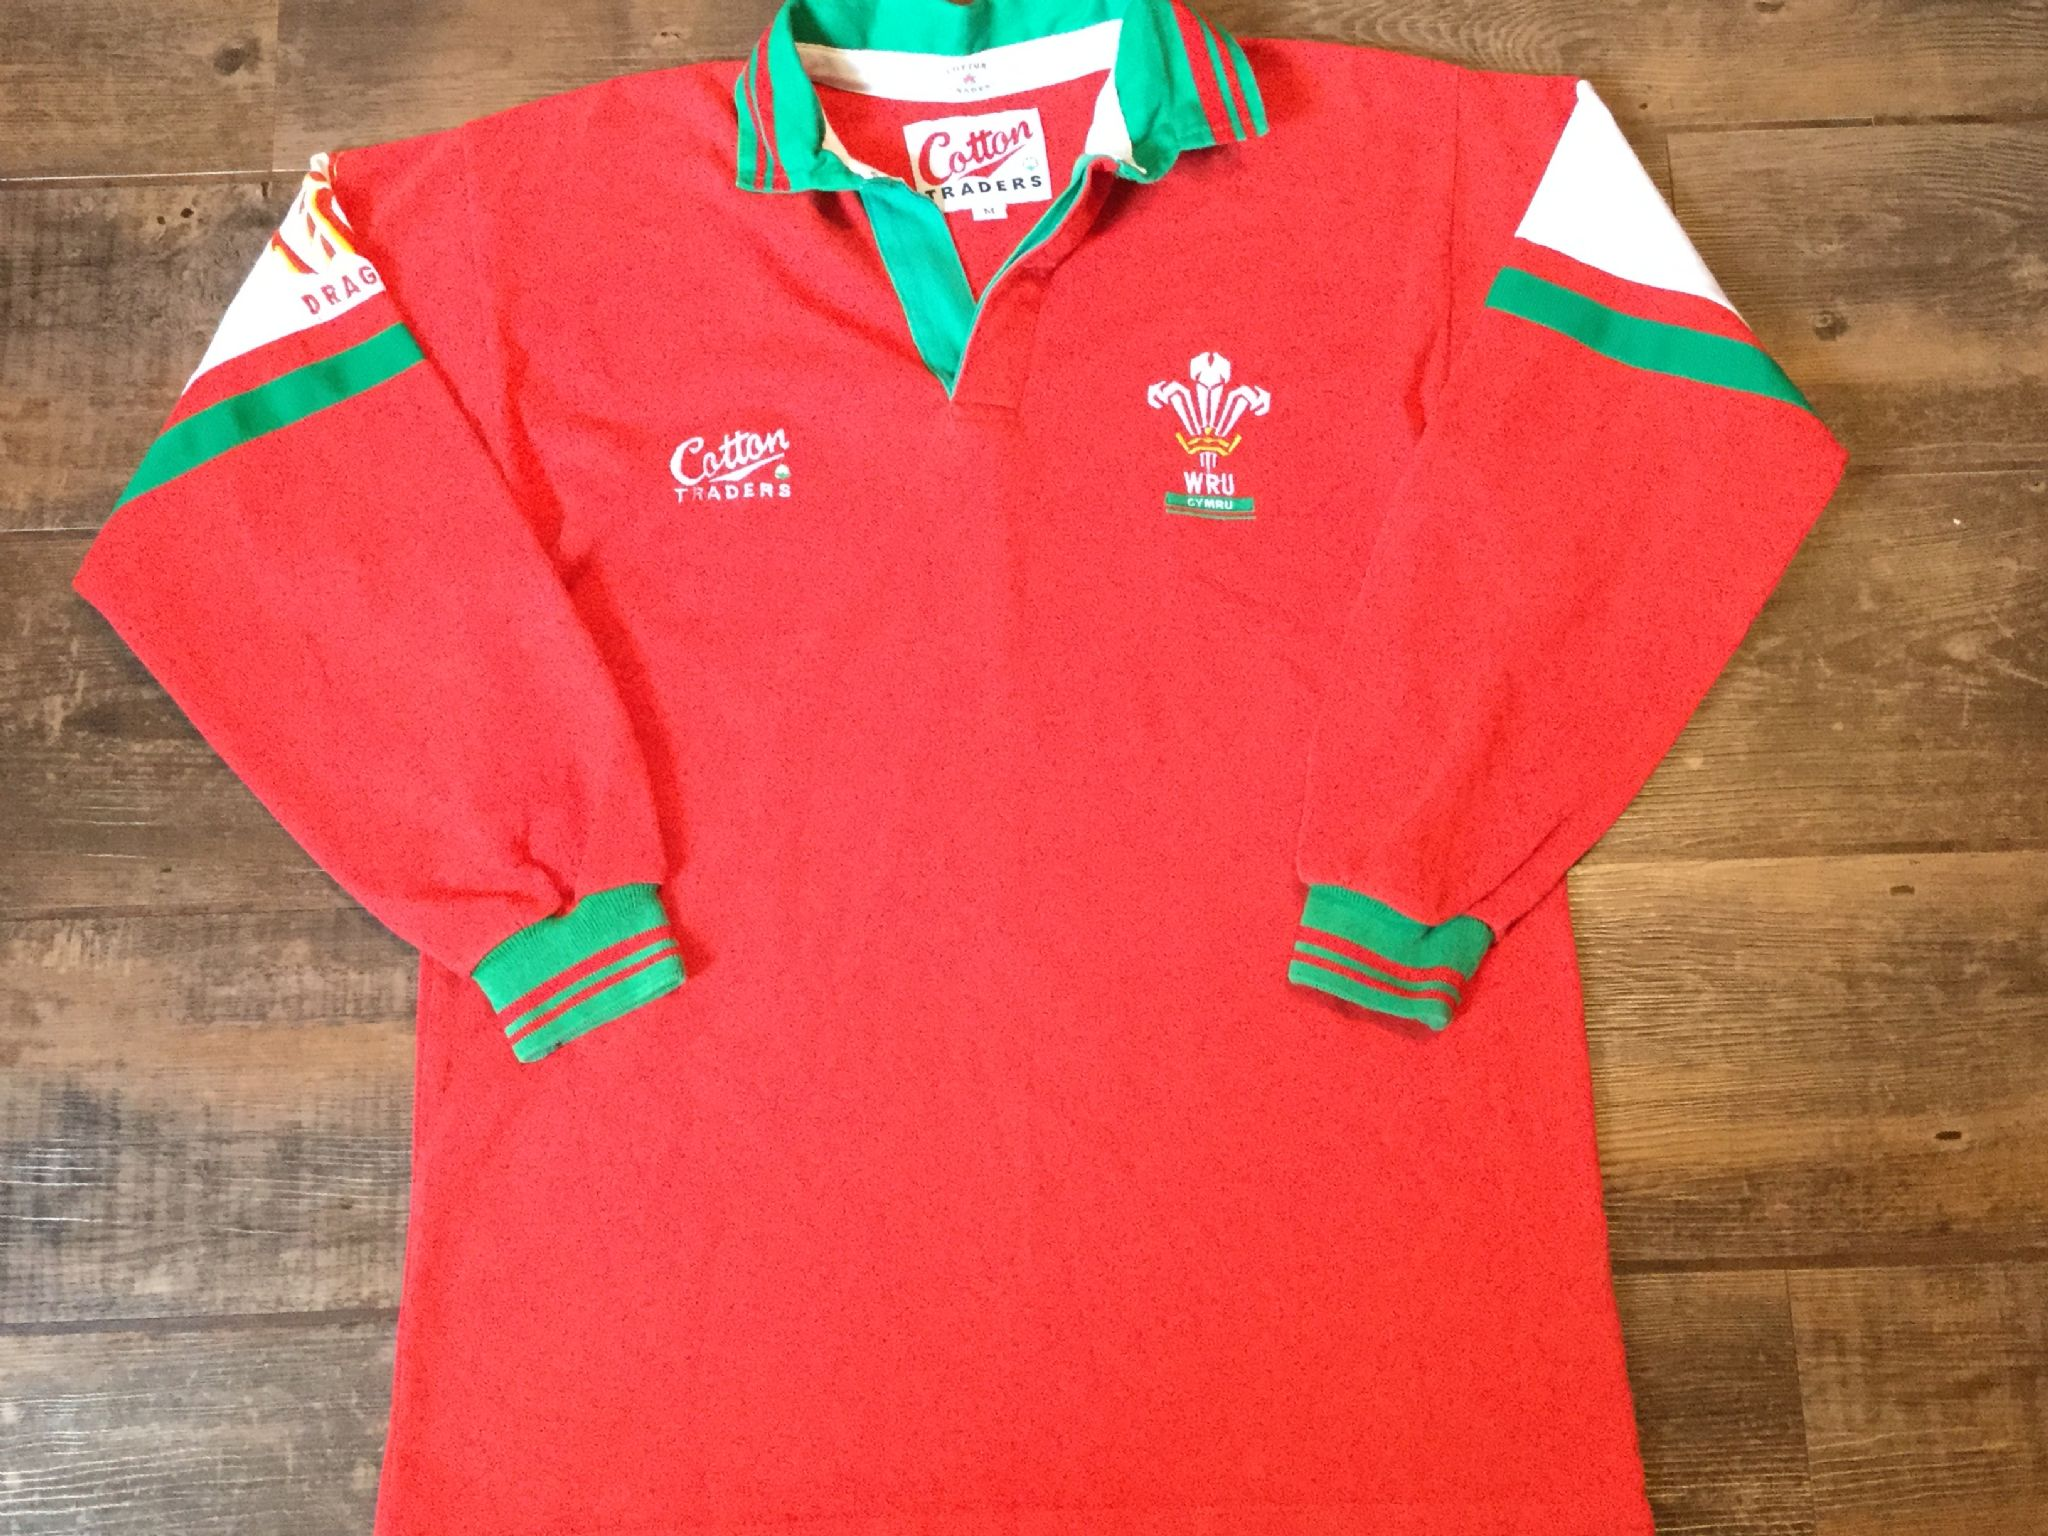 Retro 70s wales rugby jersey red welsh shirt numéros style vintage sweater top